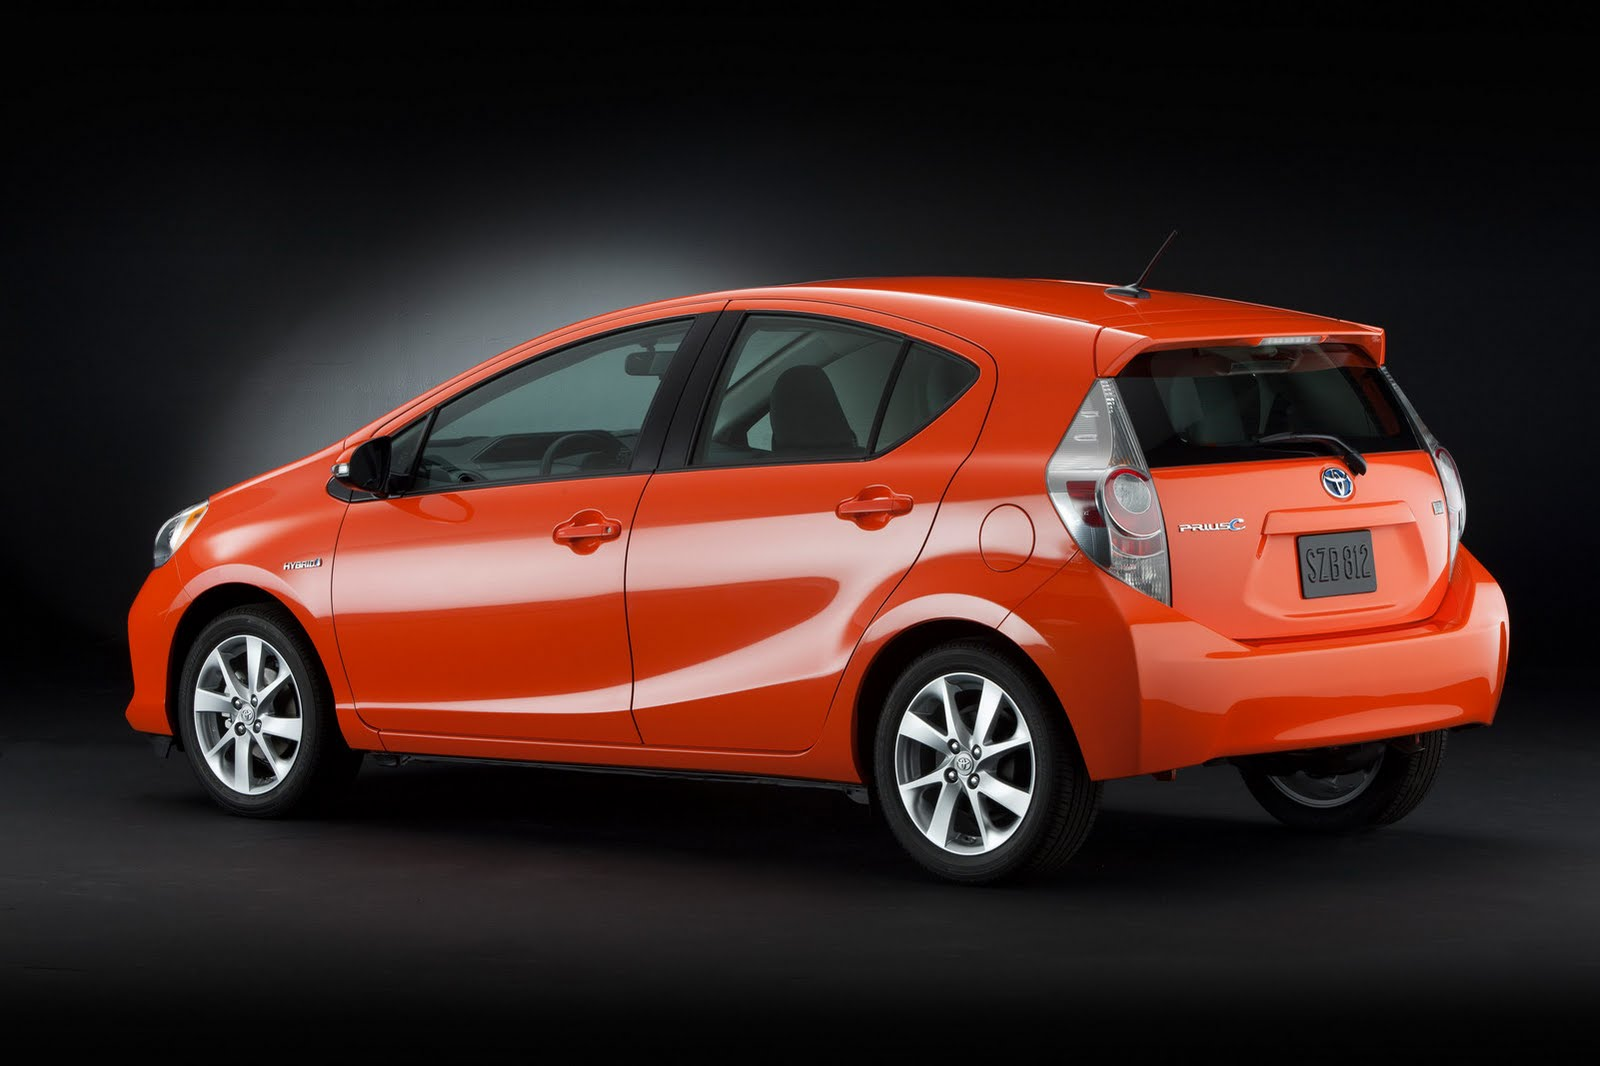 Toyota Prius C Aqua Dedicated Hybrid Officially Introduces Free Download Image Of